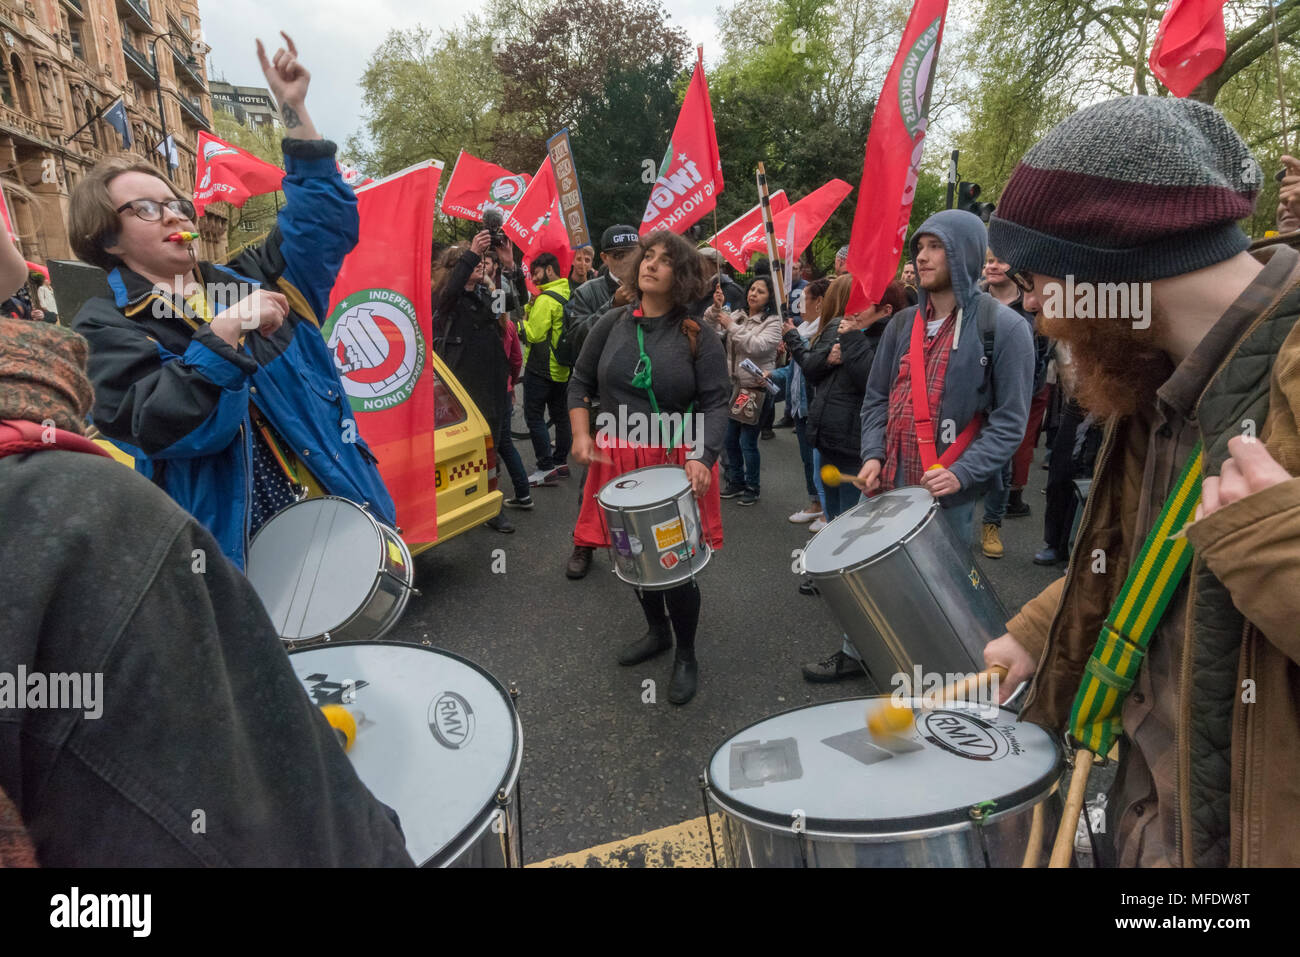 London, UK. 25th April 2018. Marchers briefly block the street on their march from the rally  by workers, students and other trade unionists supporting over 100 cleaners, porters, security officers, receptionists, gardeners, post room staff and audiovisual staff in the Independent Workers Union of Great Britain - IWGB at the end of the first day of a two day strike at the University of London central administration. The workers, employed by various outsourcing companies are demanding to be directly employed by the University, and receive the same conditions and benefits as directly employed co - Stock Image